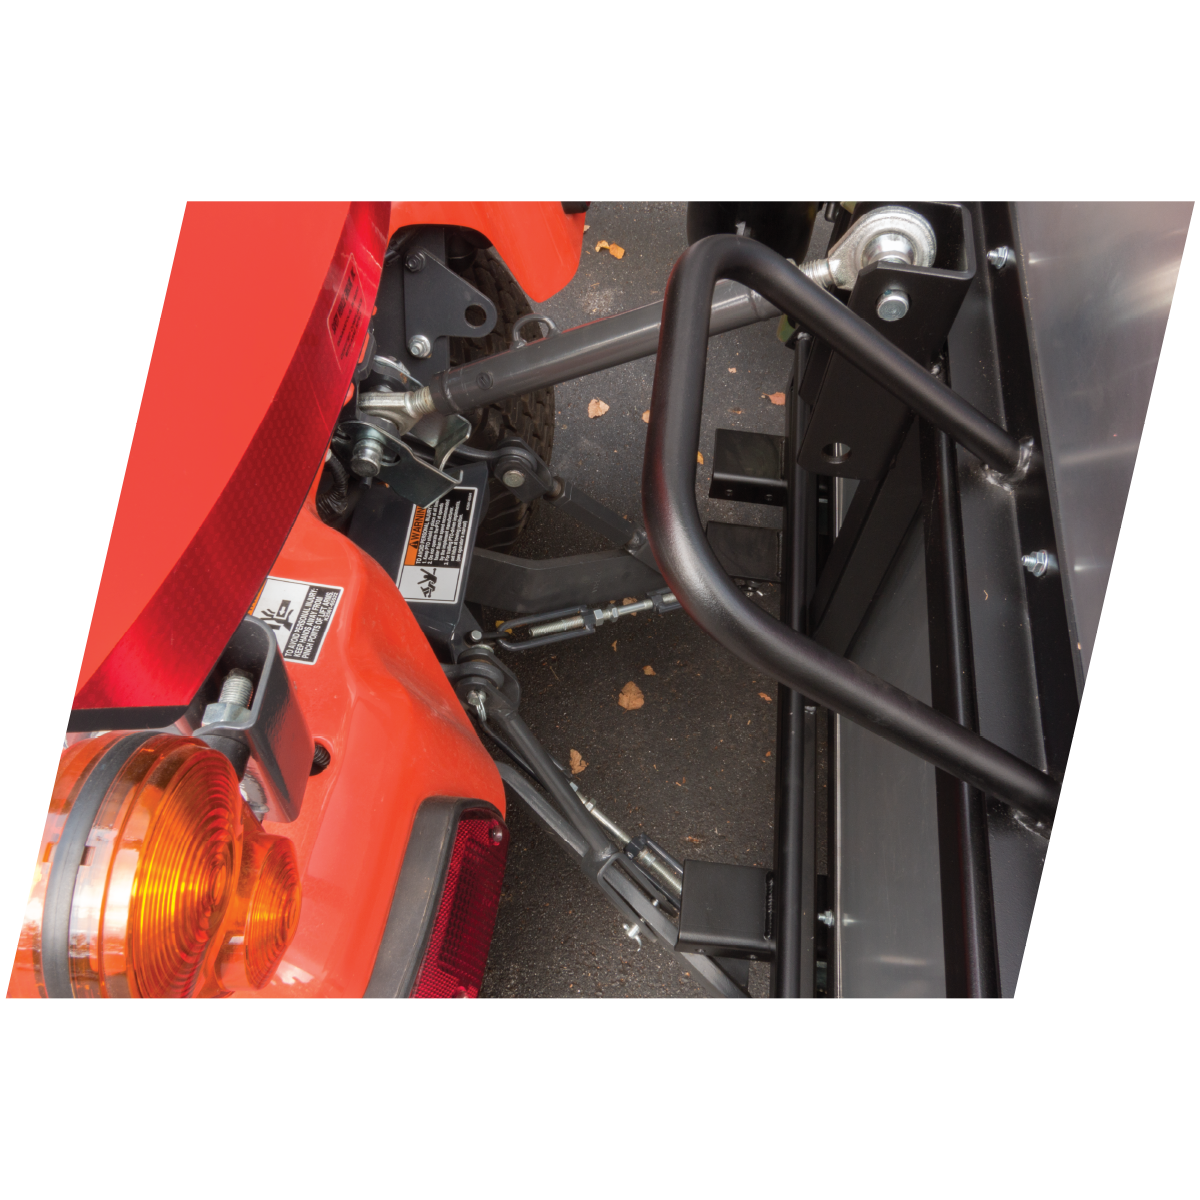 Mounts on Compact Tractors with a Category 1 3-Point Hitch